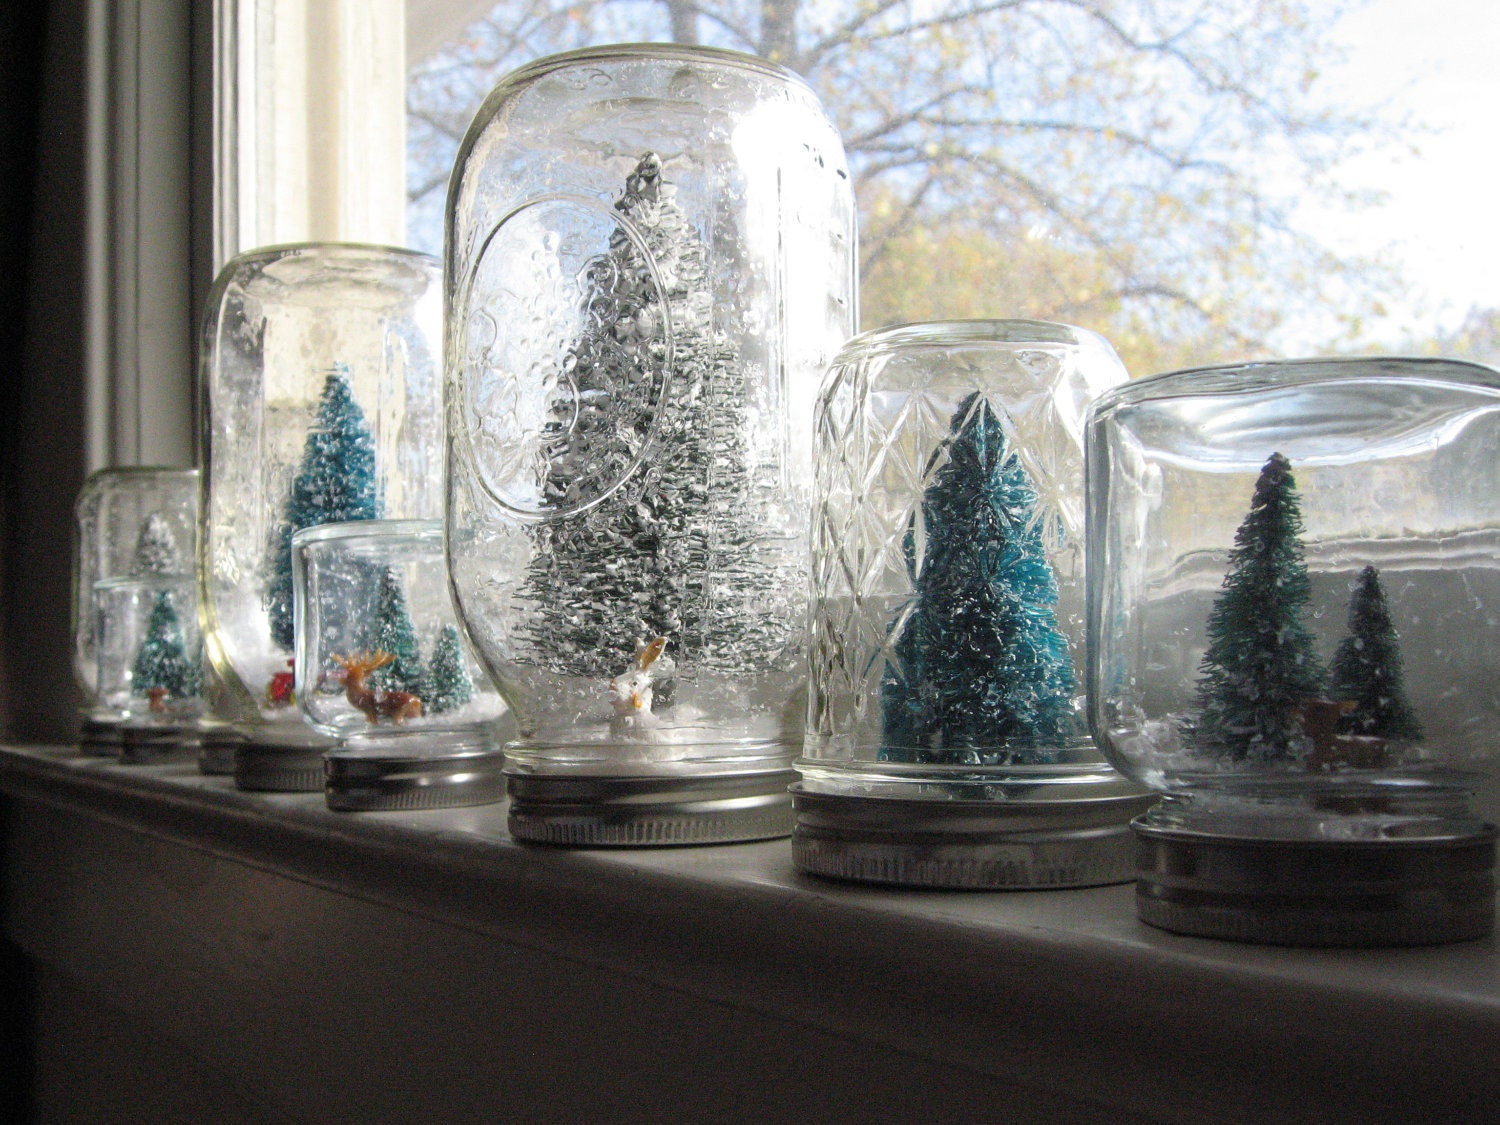 Mason Jar Snow Globe Vintage Inspired Christmas Tree and Rabbit Large - Artlets